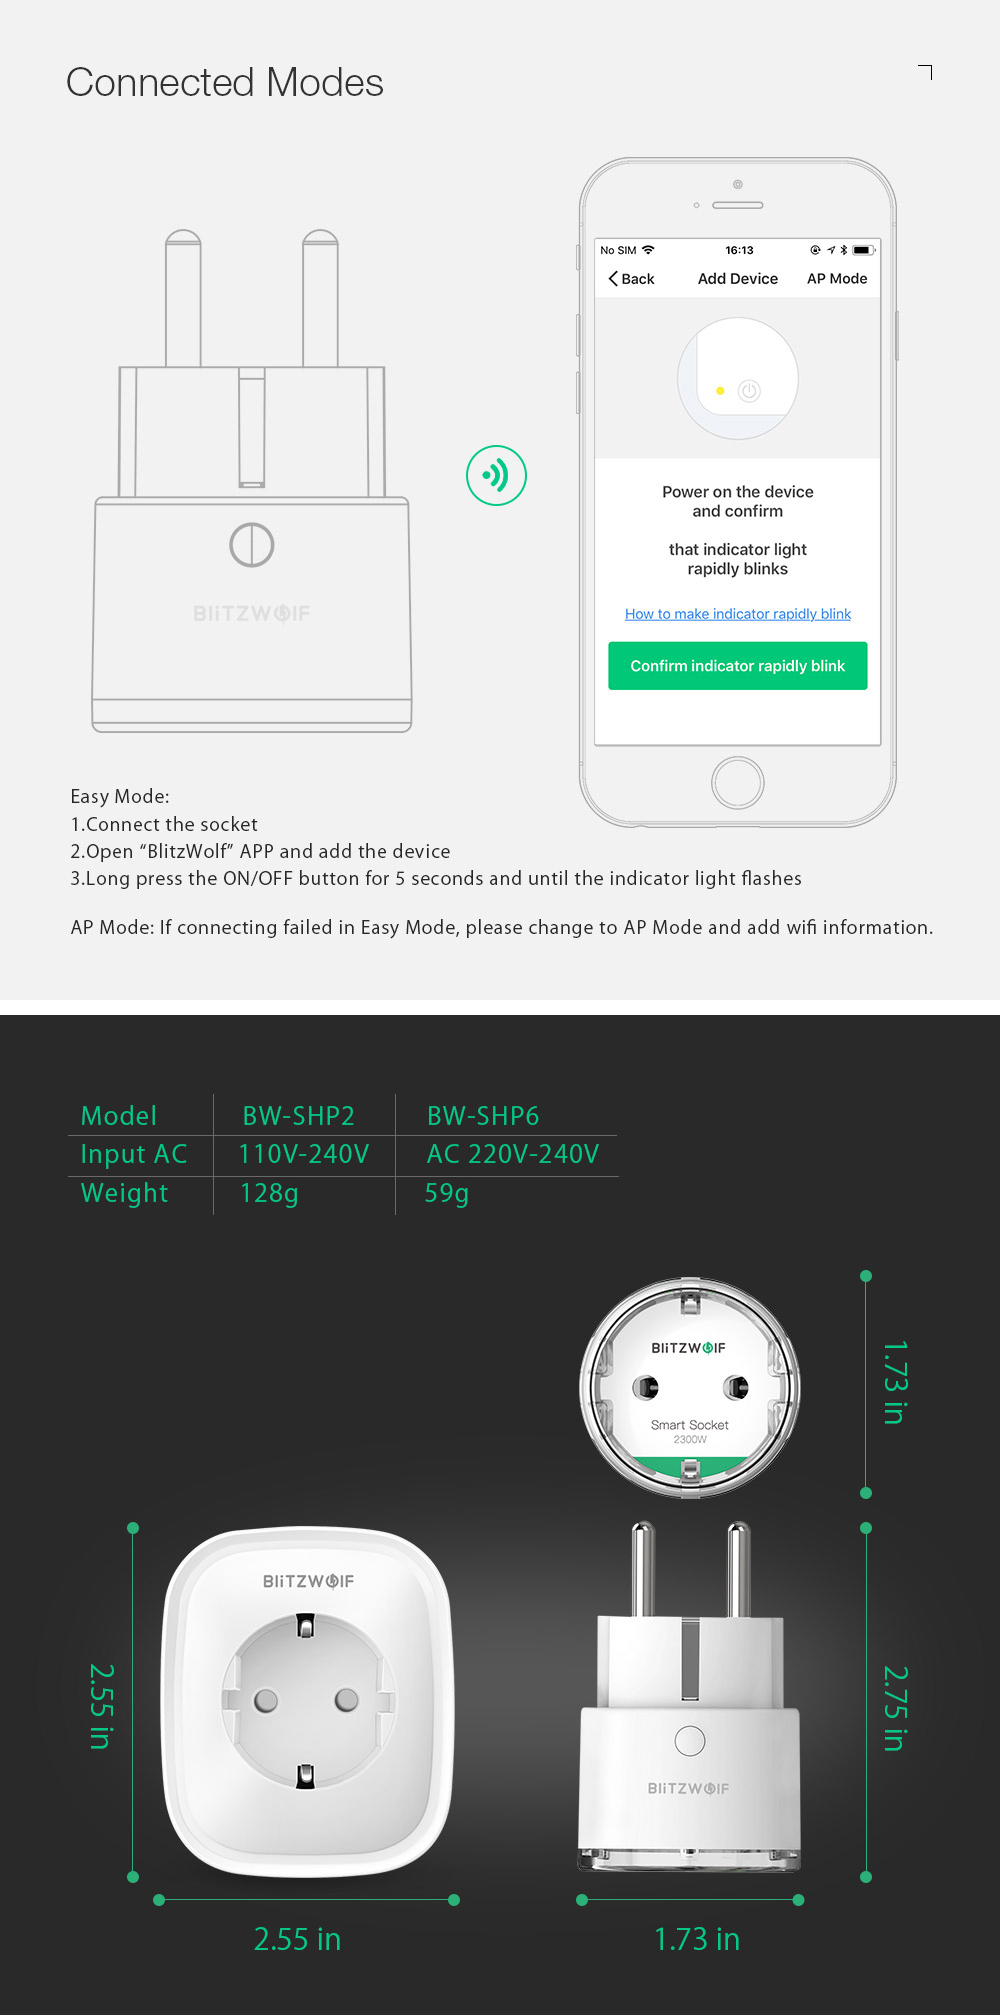 BlitzWolf® BW-SHP6 10A EU Plug Metering Version WIFI Smart Socket 220V-240V Work with Amazon Alexa Google Assistant